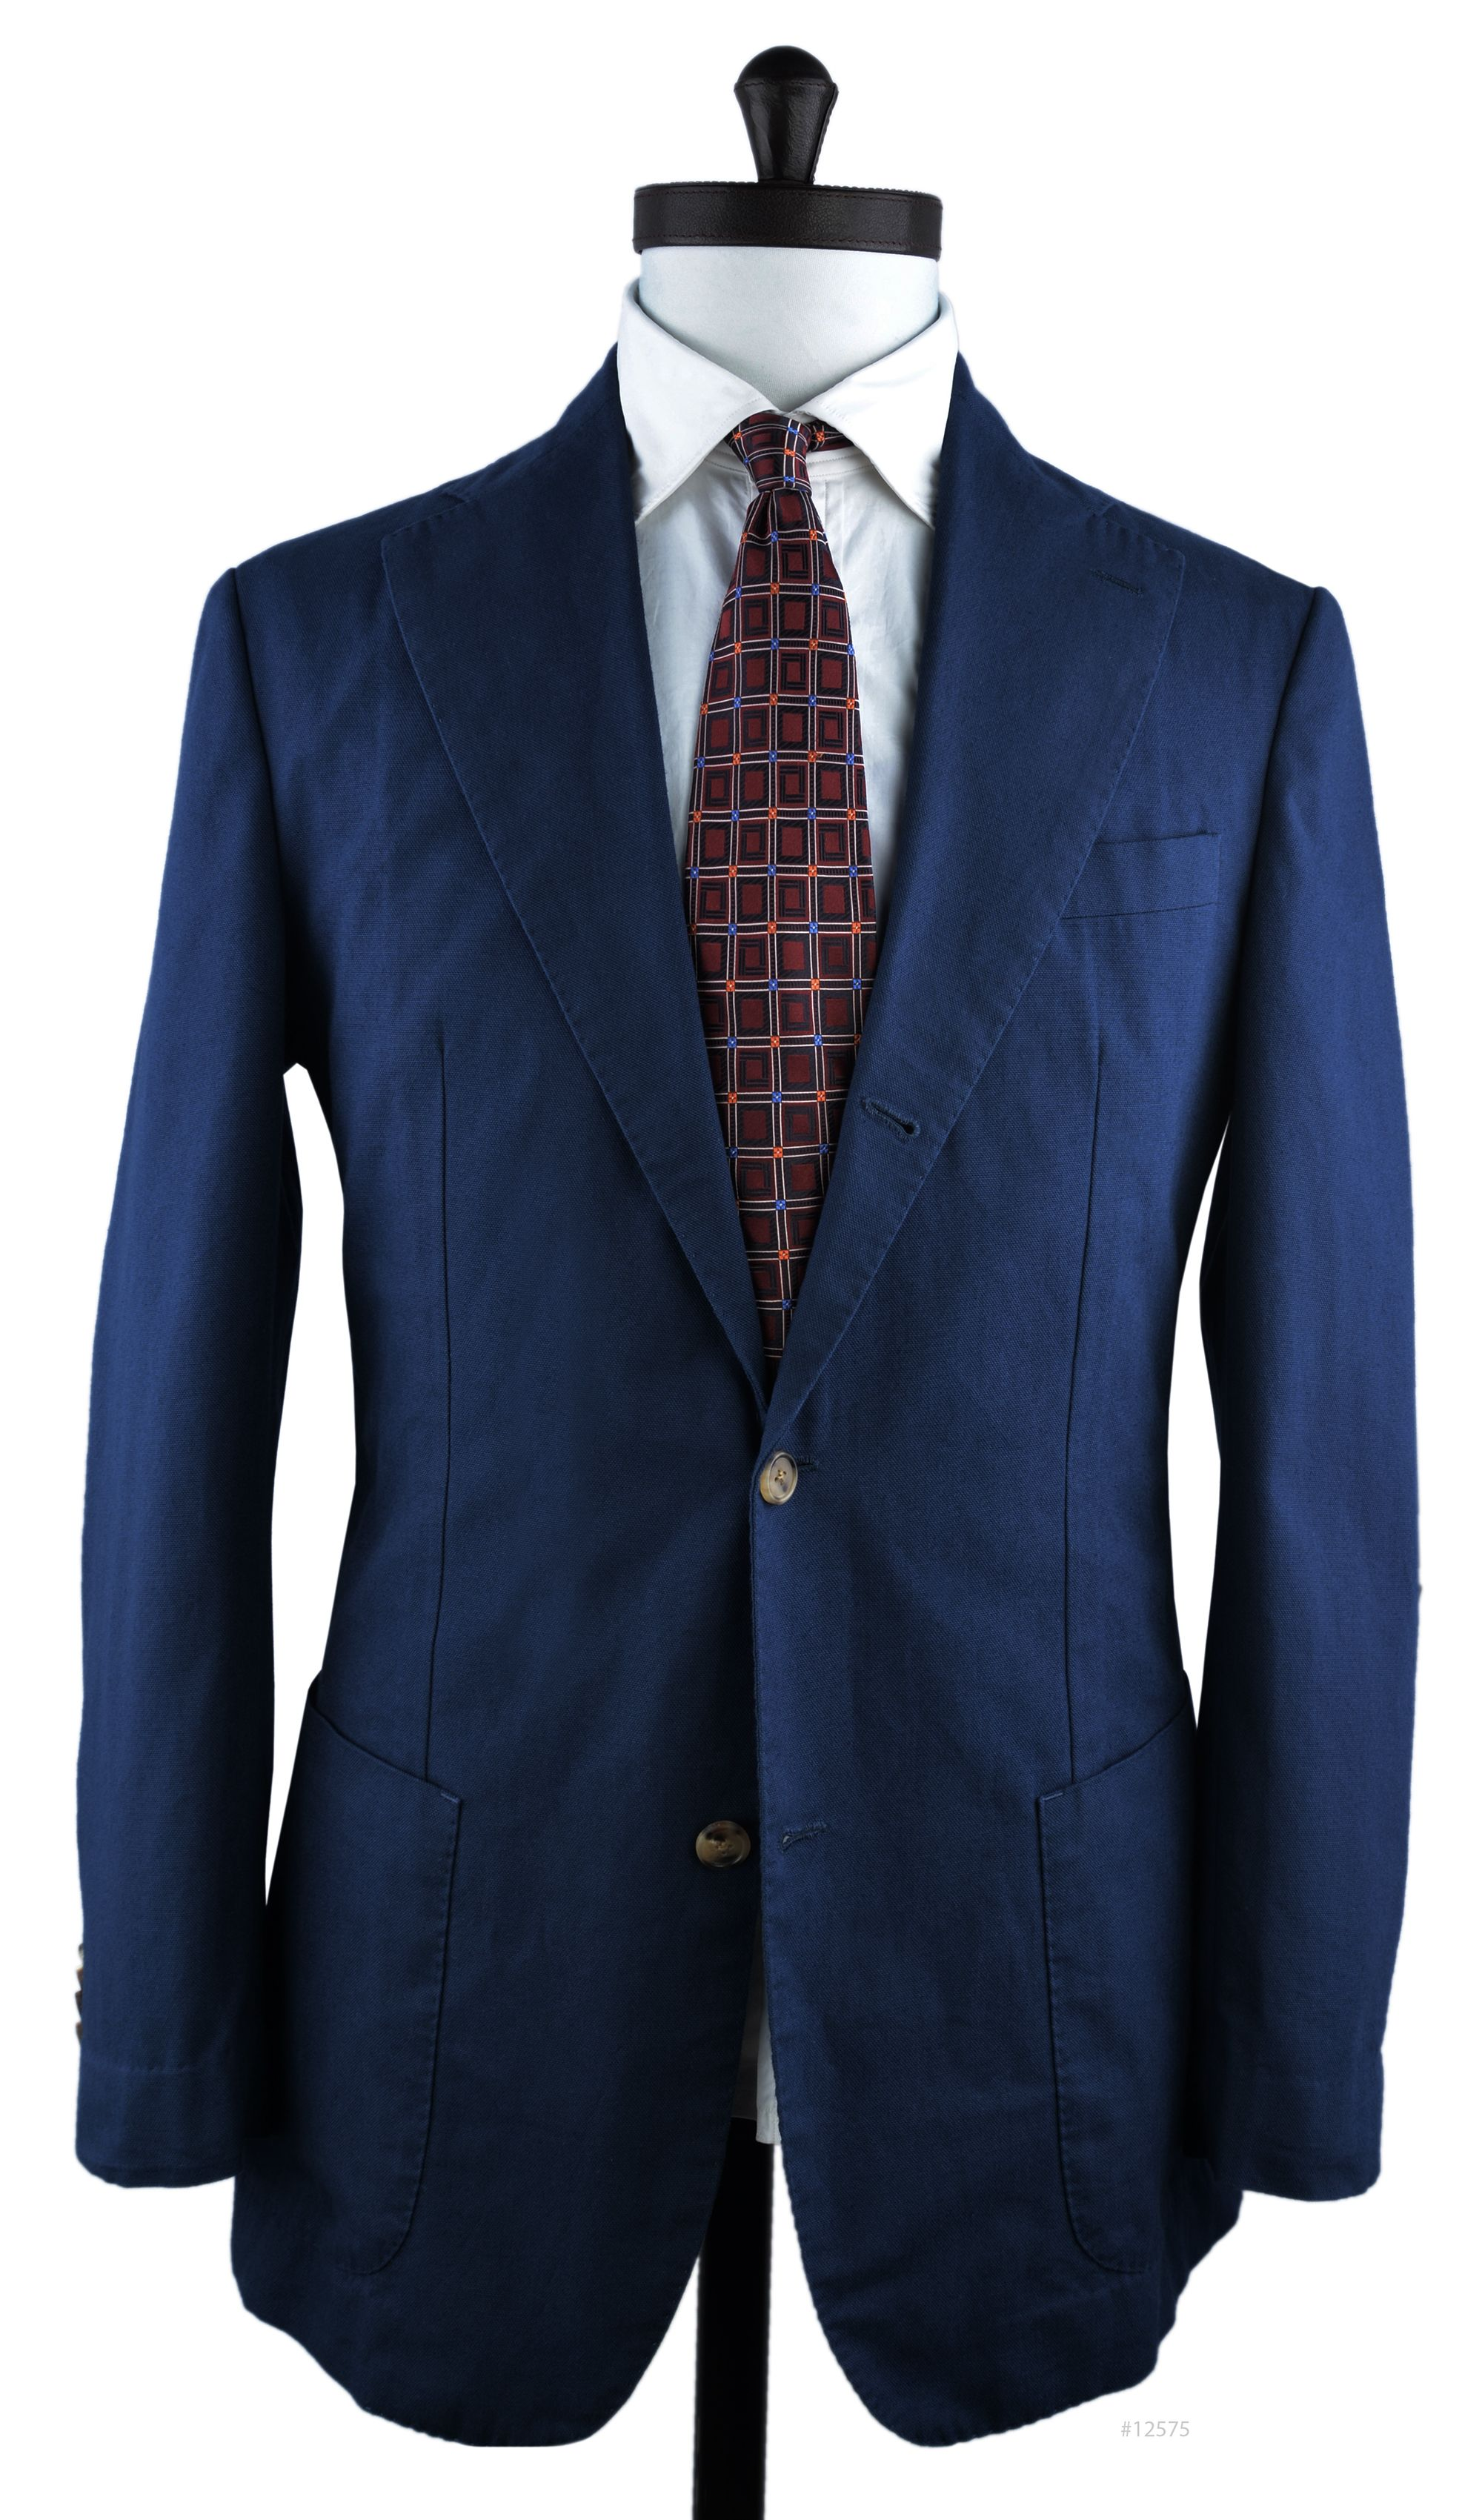 Luxire casual unstructured summer jacket constructed in   Brisbane Moss Navy Canvas: http://luxire.com/products/brisbane-moss-navy-canvas  Details: 3-2-roll button style with notch lapel.  Welted breast pocket and hip patch pocket.  Sleeve opening: Kissing, functional light brown horn buttons.